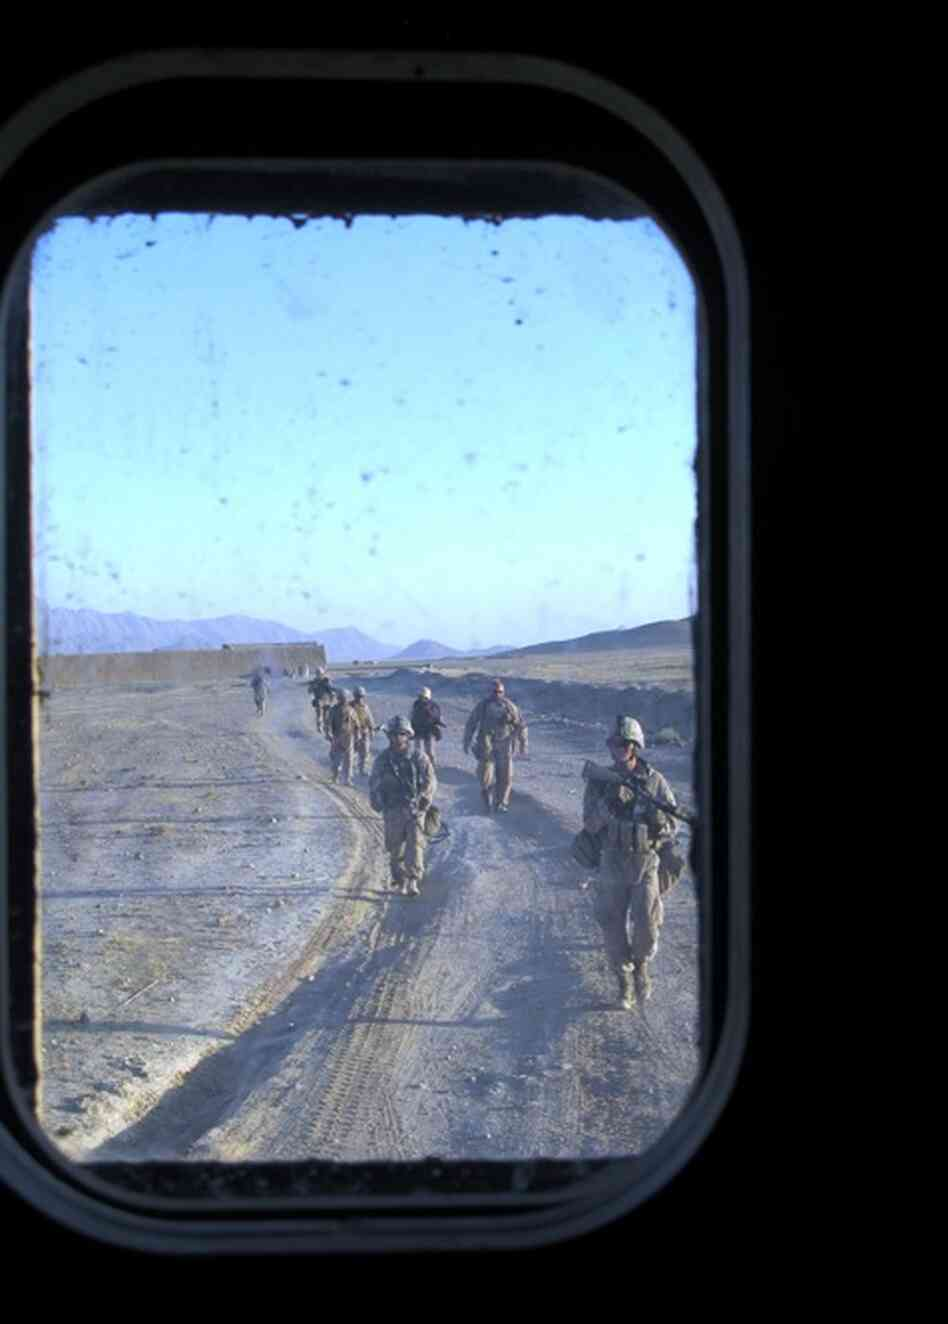 U.S. Marines who arrived in this v